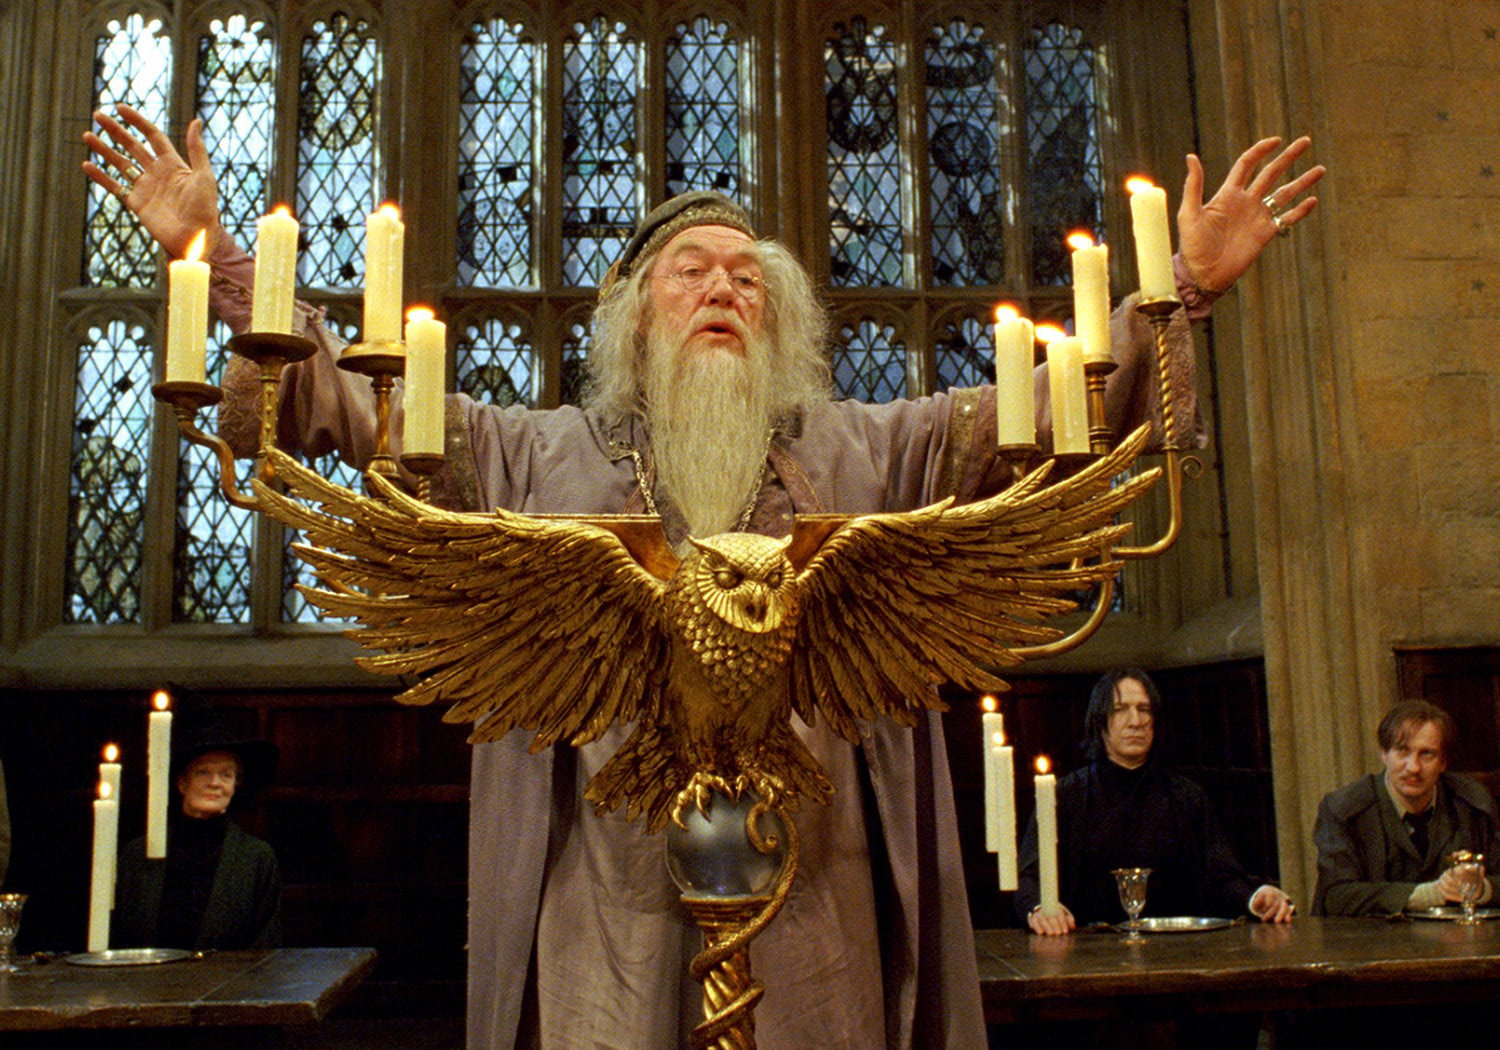 Dumbledore with hands raised